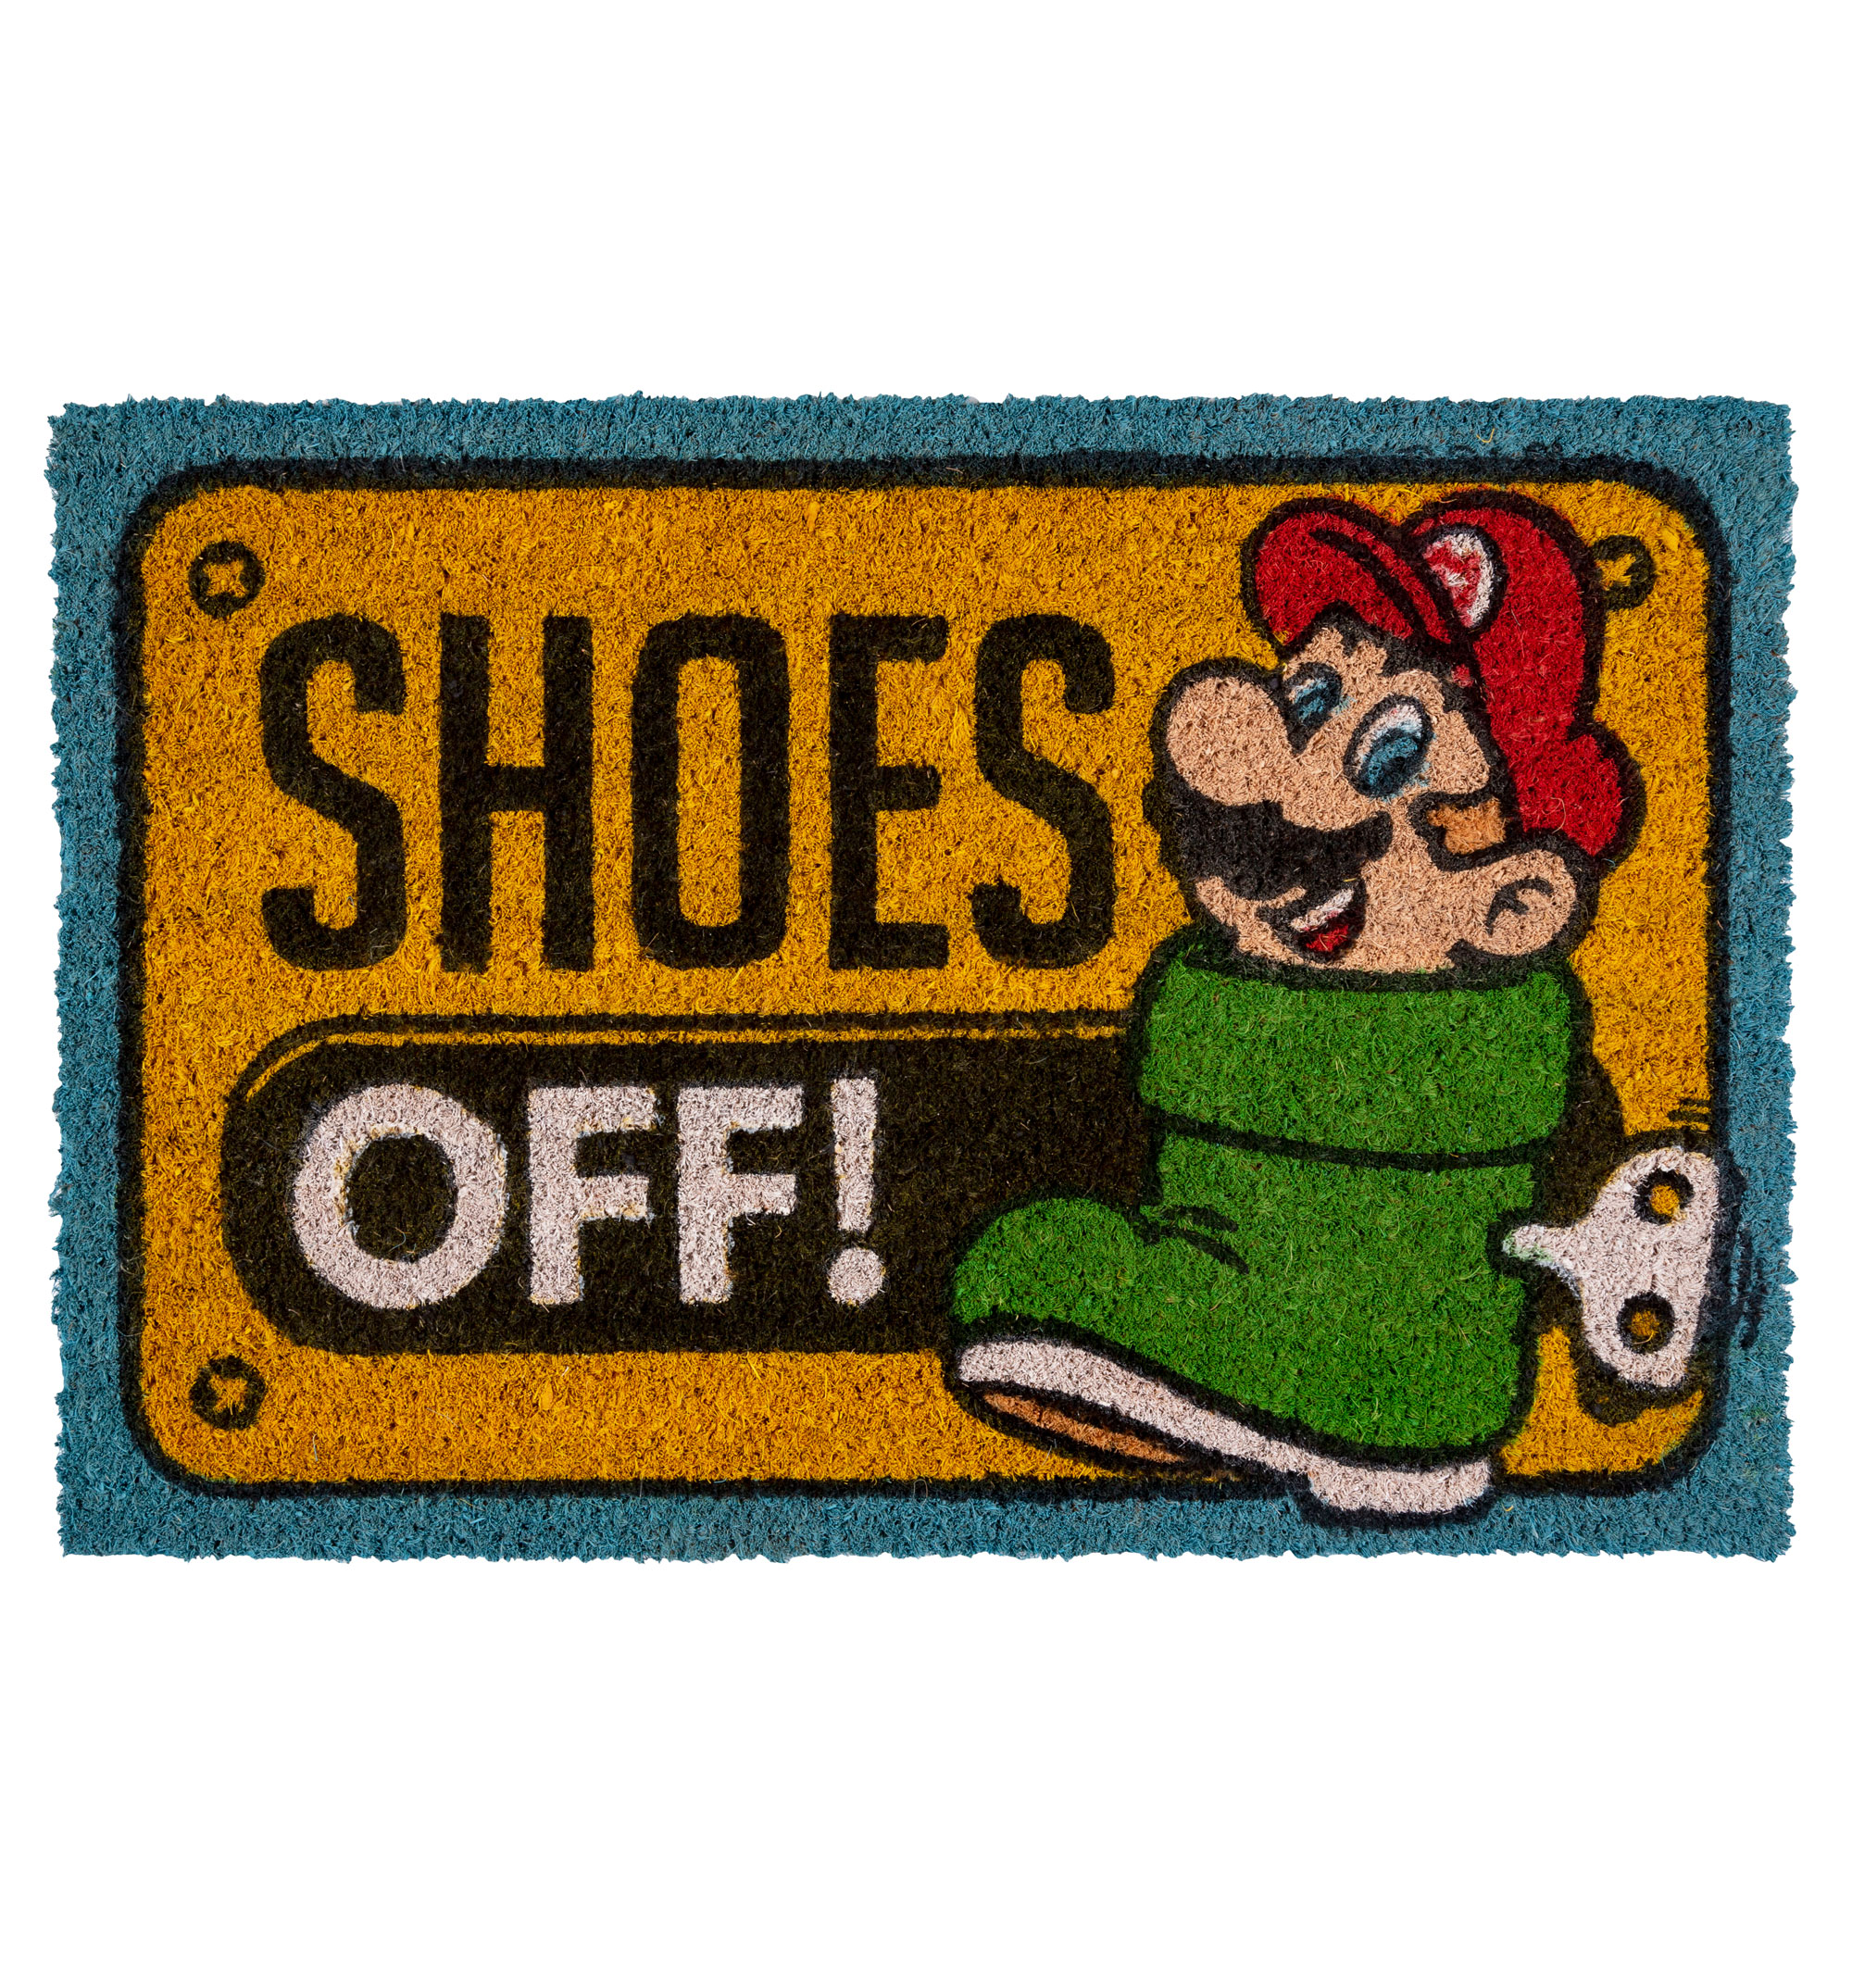 Nintendo Super Mario Shoes Off Door Mat - Measures 60 x 40 cm - Made of 58%  PVC and 42% coconut (brush material) - Great house warming gift 881838c32f46